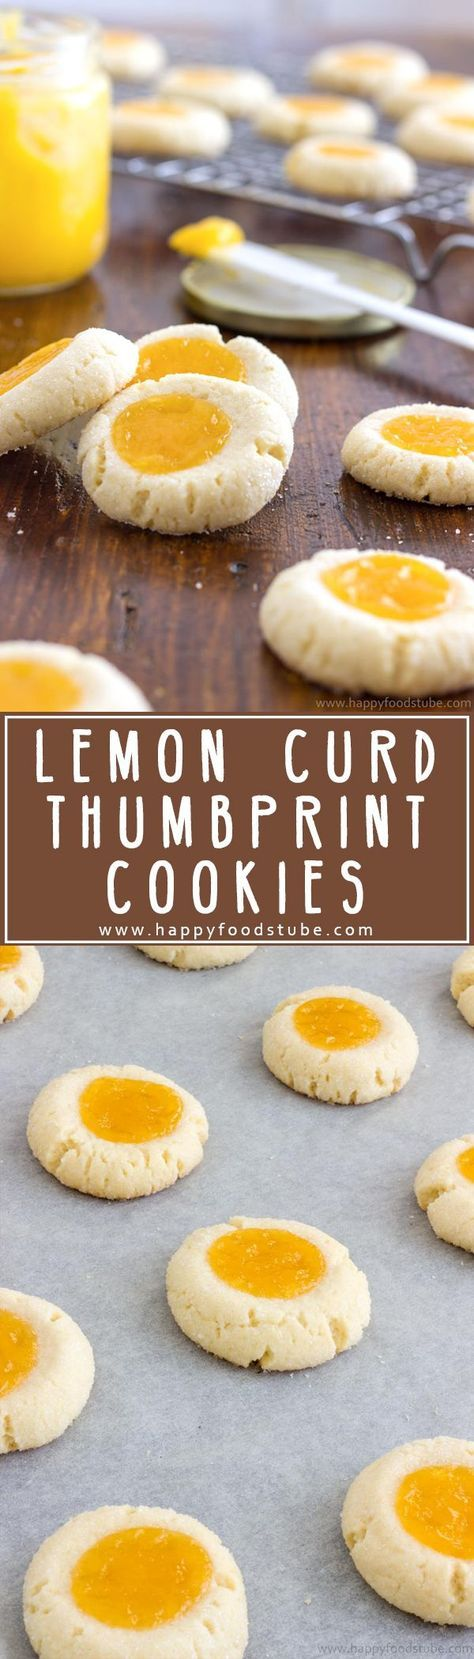 Homemade lemon curd thumbprint cookies are pure perfection! A combination of sweet buttery cookies and citrusy topping with a hint of almonds! Super easy recipe.   http://happyfoodstube.com